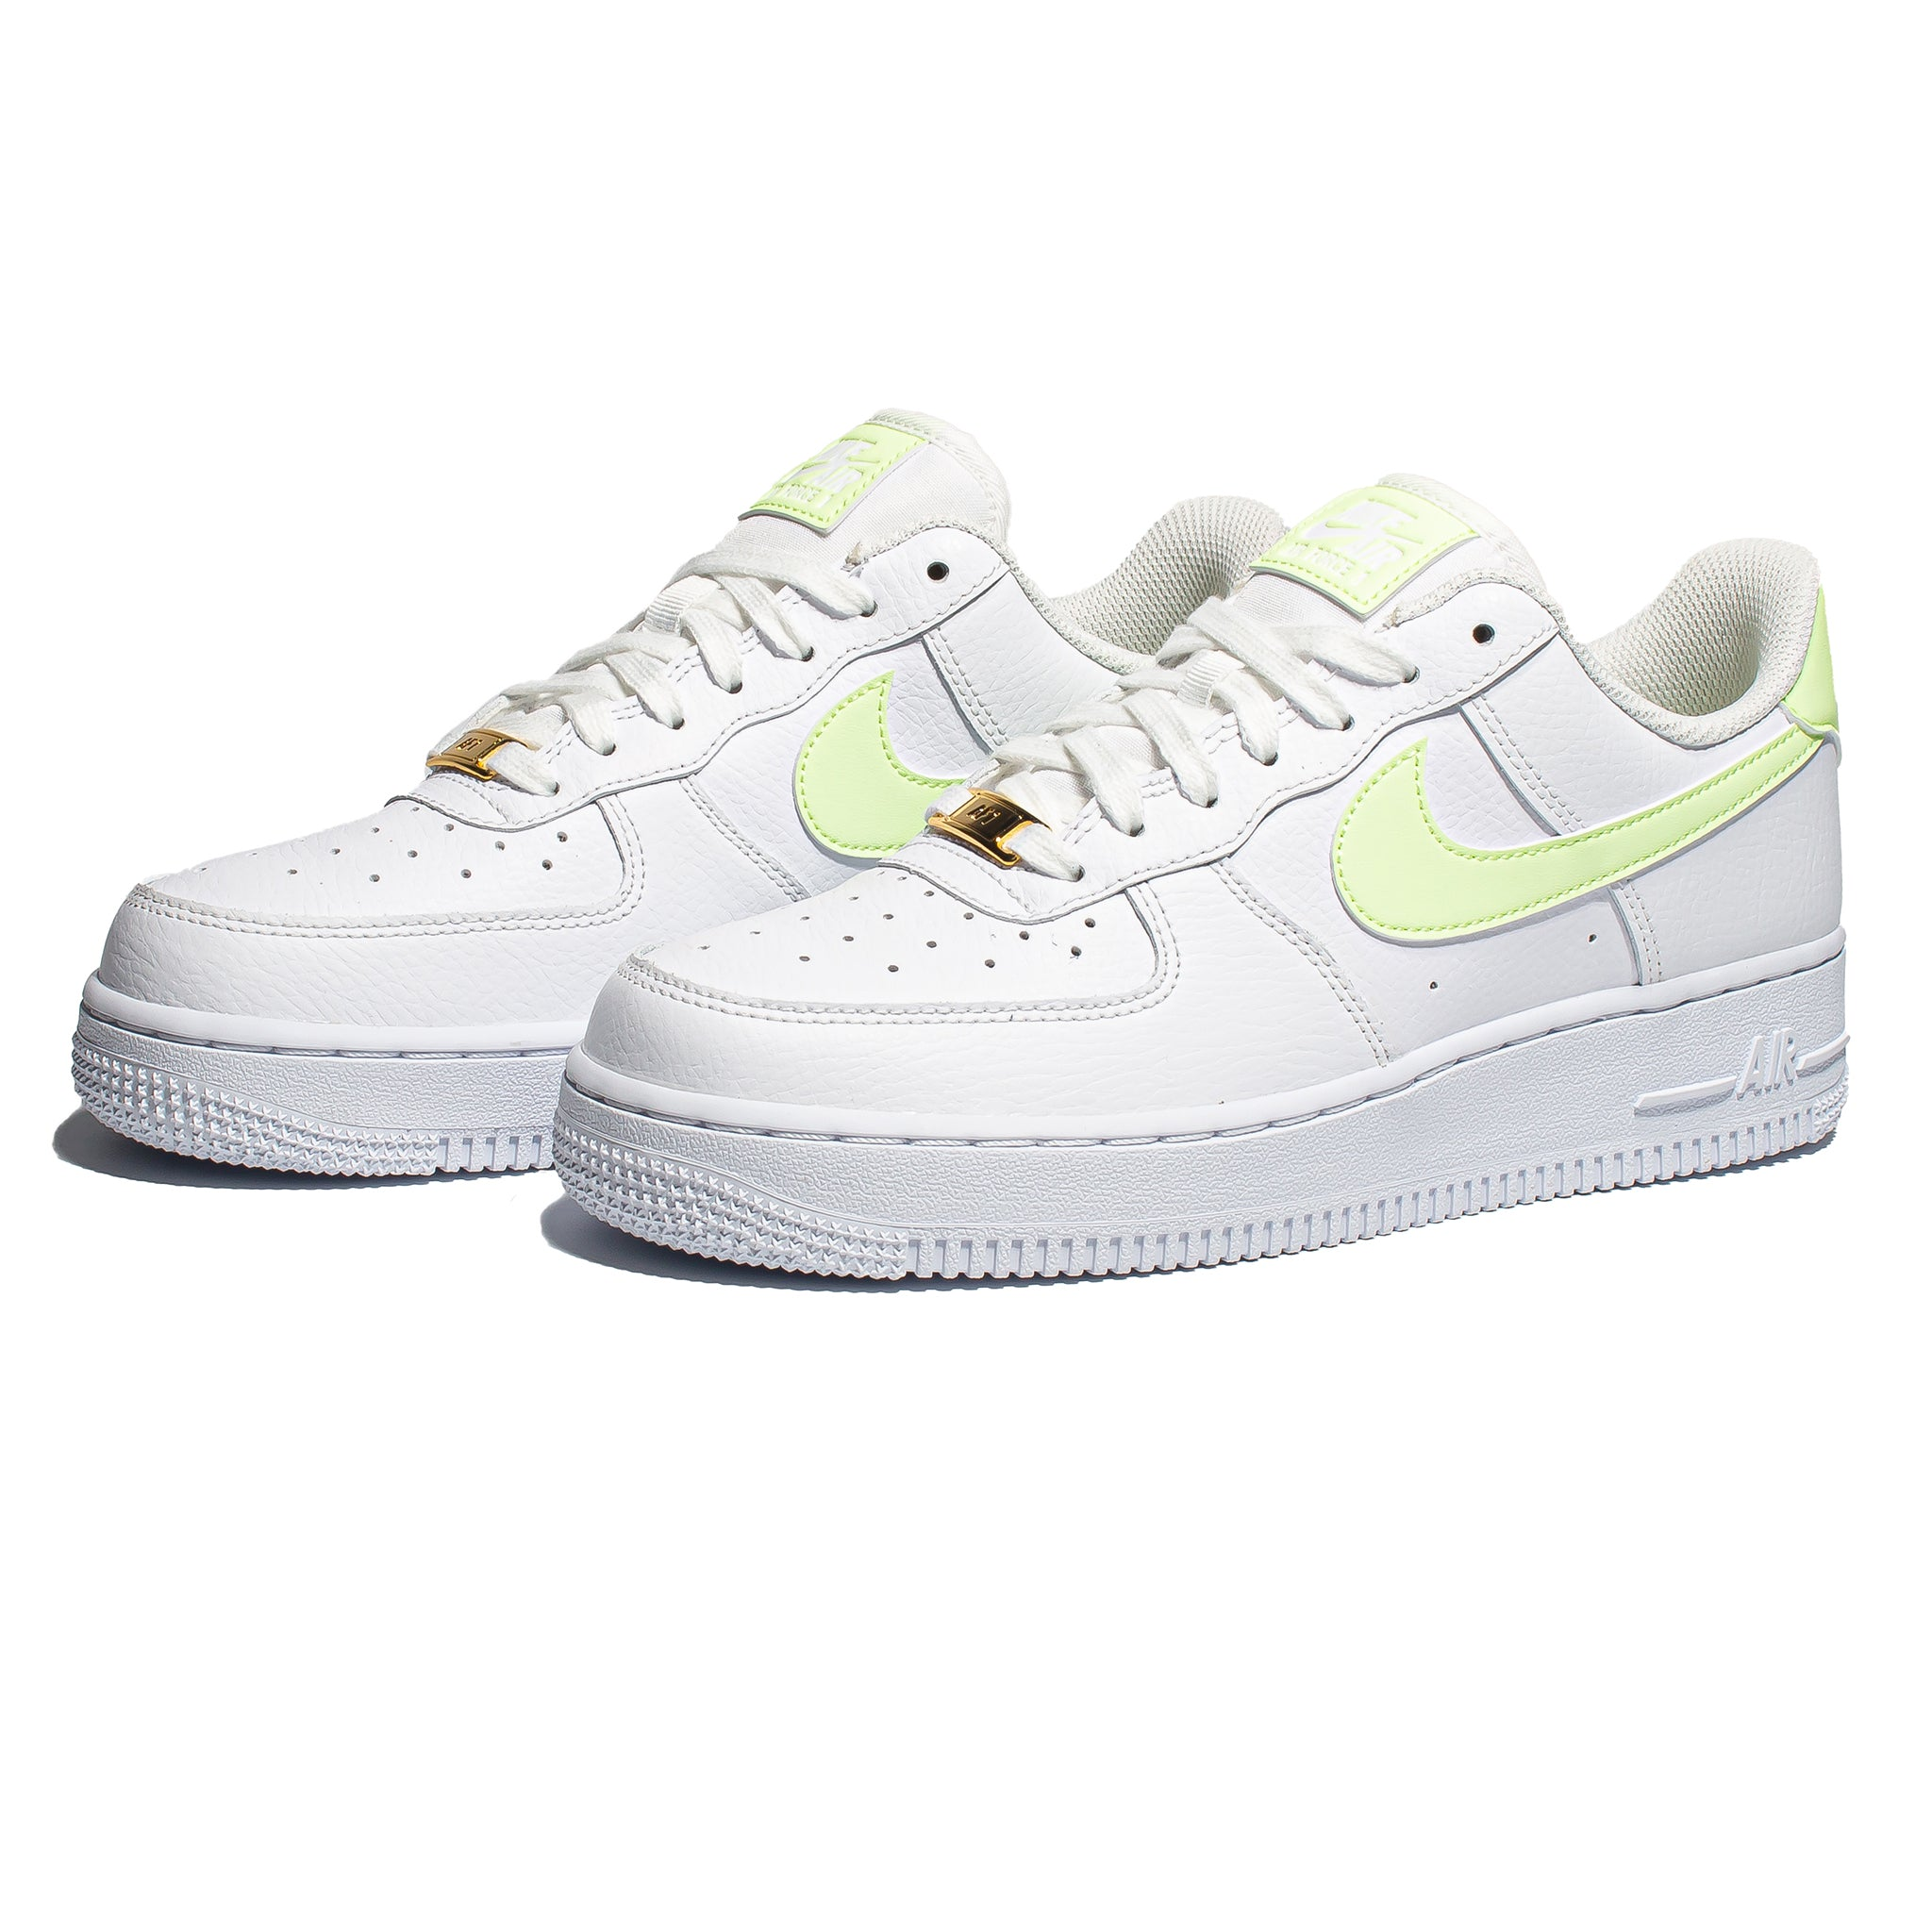 Nike Air Force 1 '07 'Barely Volt'